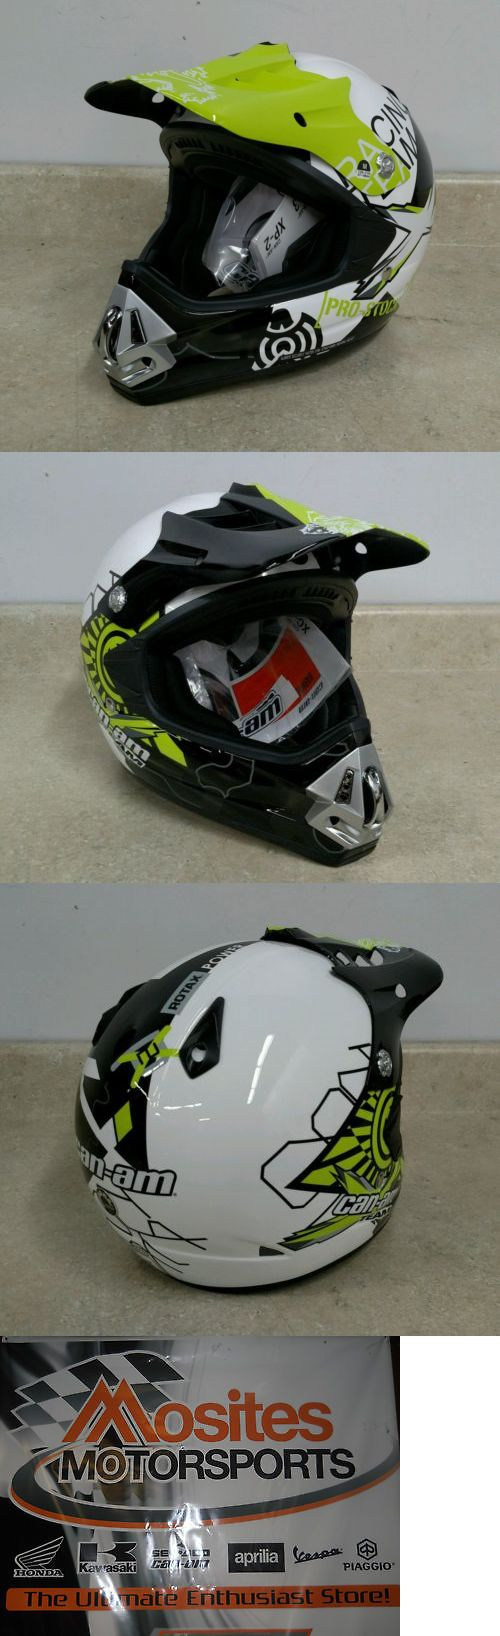 Other Winter Sport Clothing 16060: Can Am Atv Xp-2 Xp2 Pro Stock Helmet All Size 4695630970 #4695631270 Sale -> BUY IT NOW ONLY: $85 on eBay!